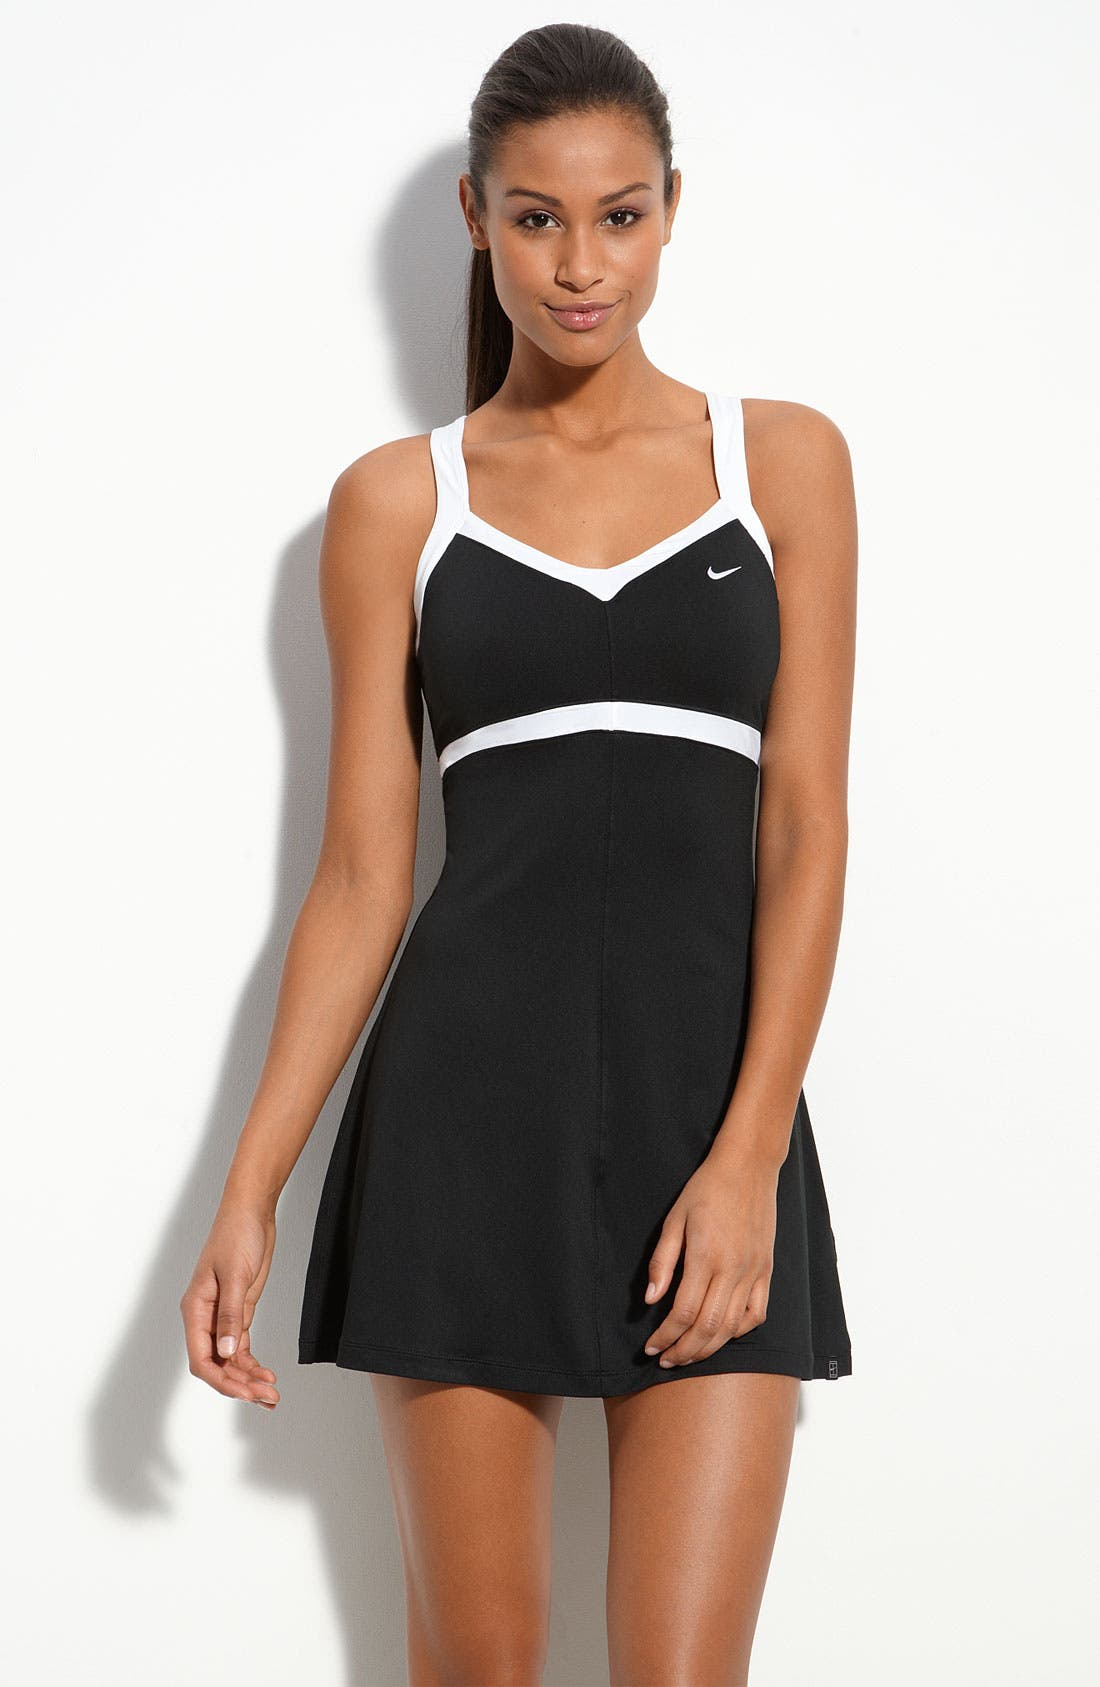 Shop for Tennis Apparel, Clothing & Outfits at Tennis Express! Take advantage of our Free Shipping & Returns*· Order Today, Ships Today.